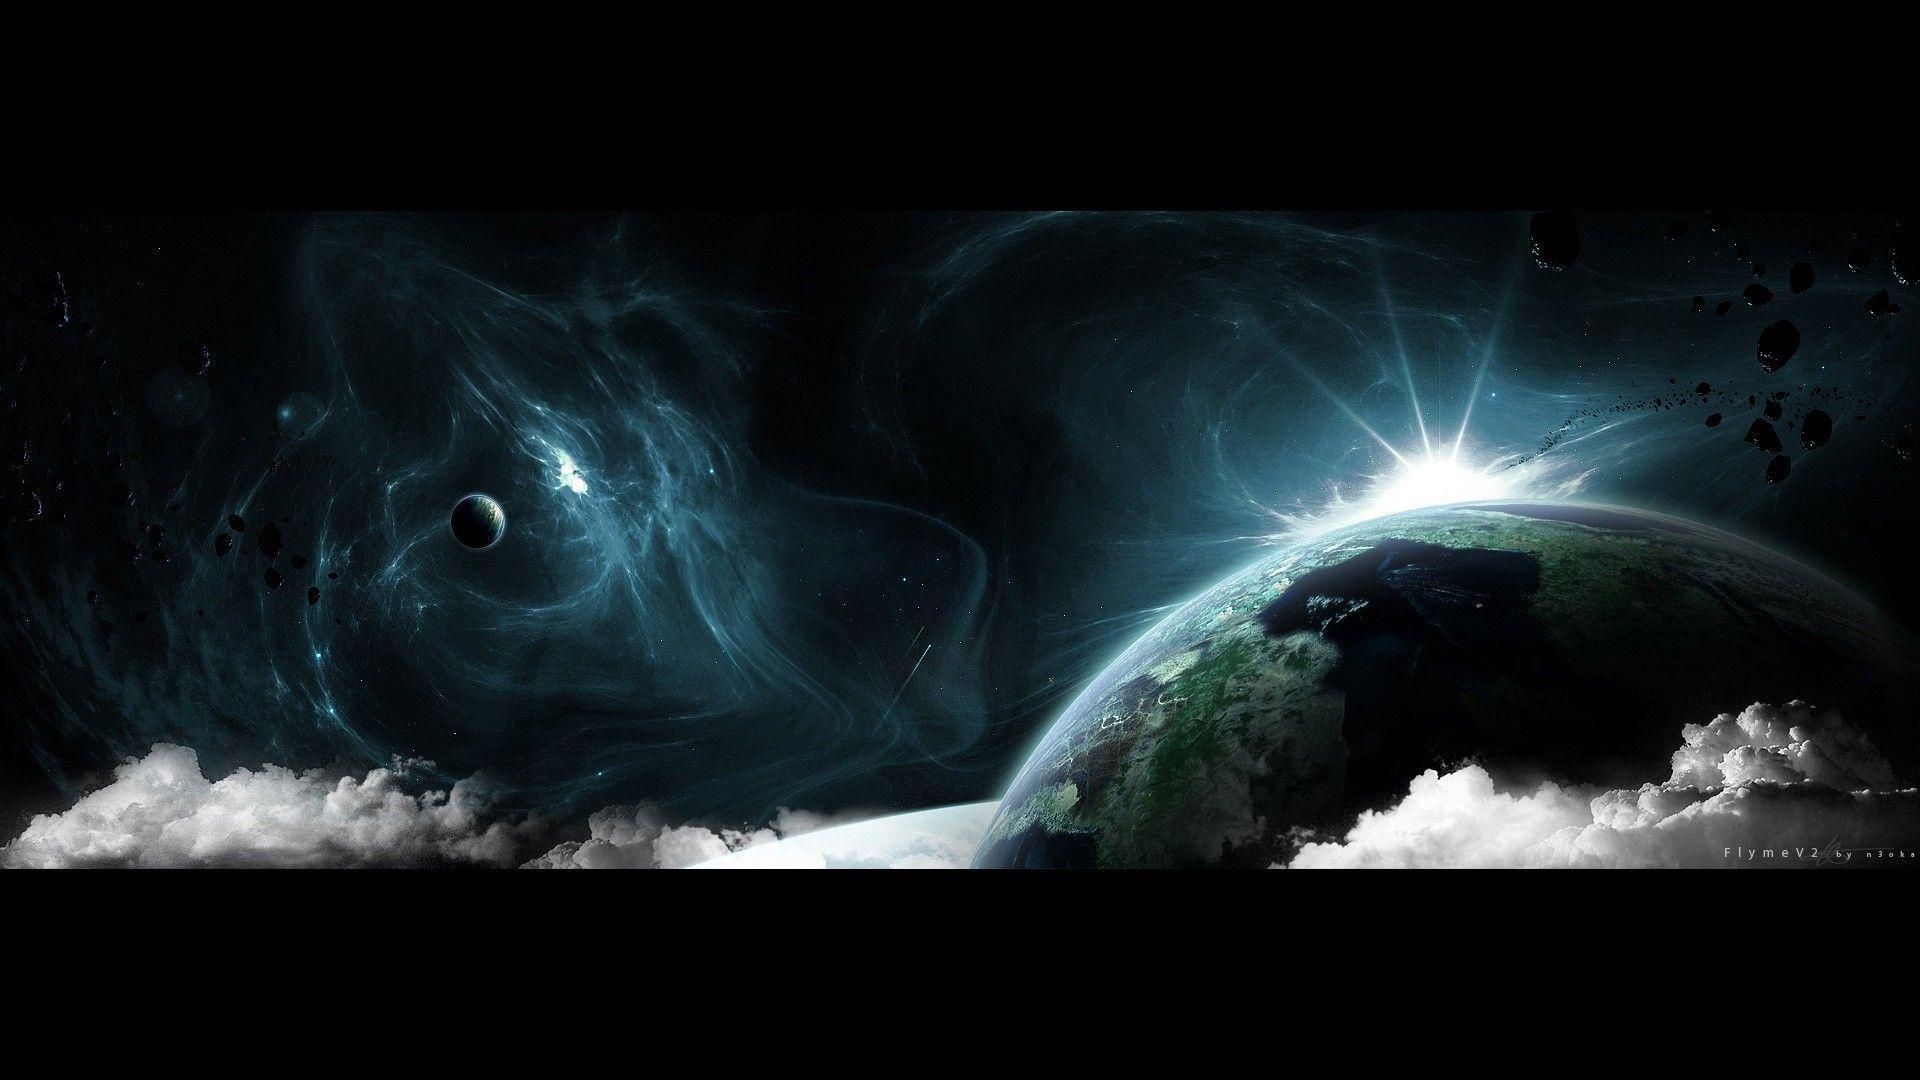 universe meditation wallpaper wallpapers - photo #5